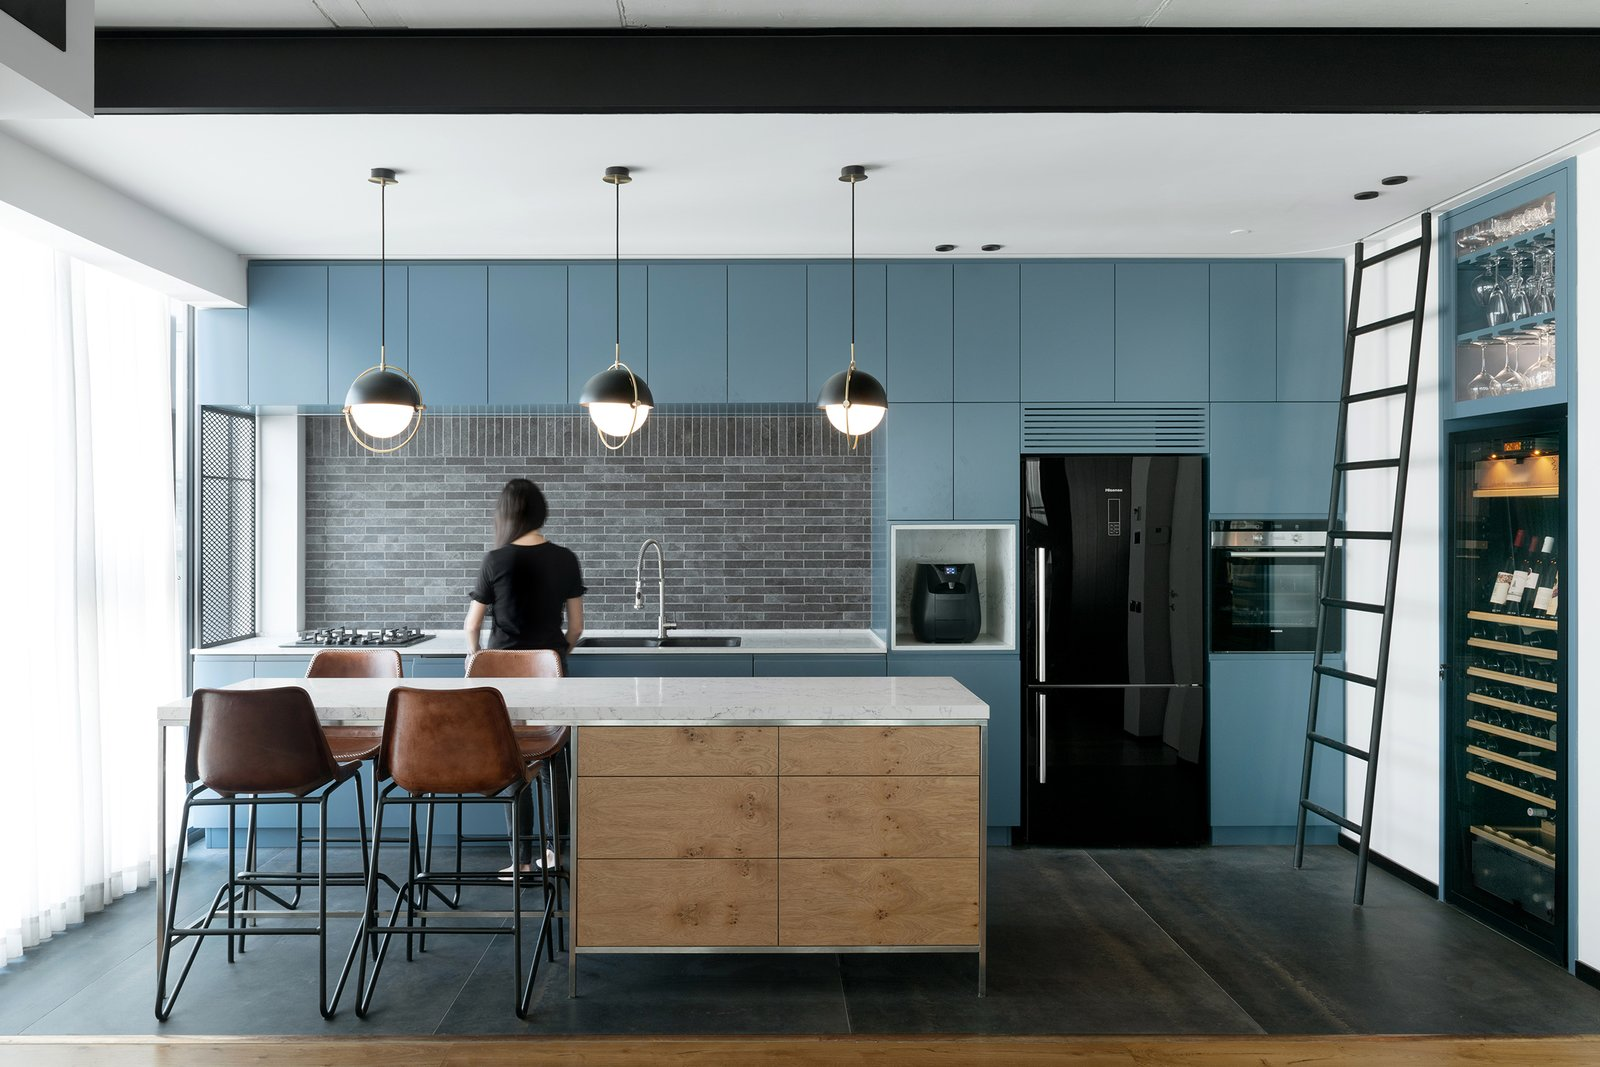 6 Simple Ways to Save on Your Kitchen Renovation - Dwell